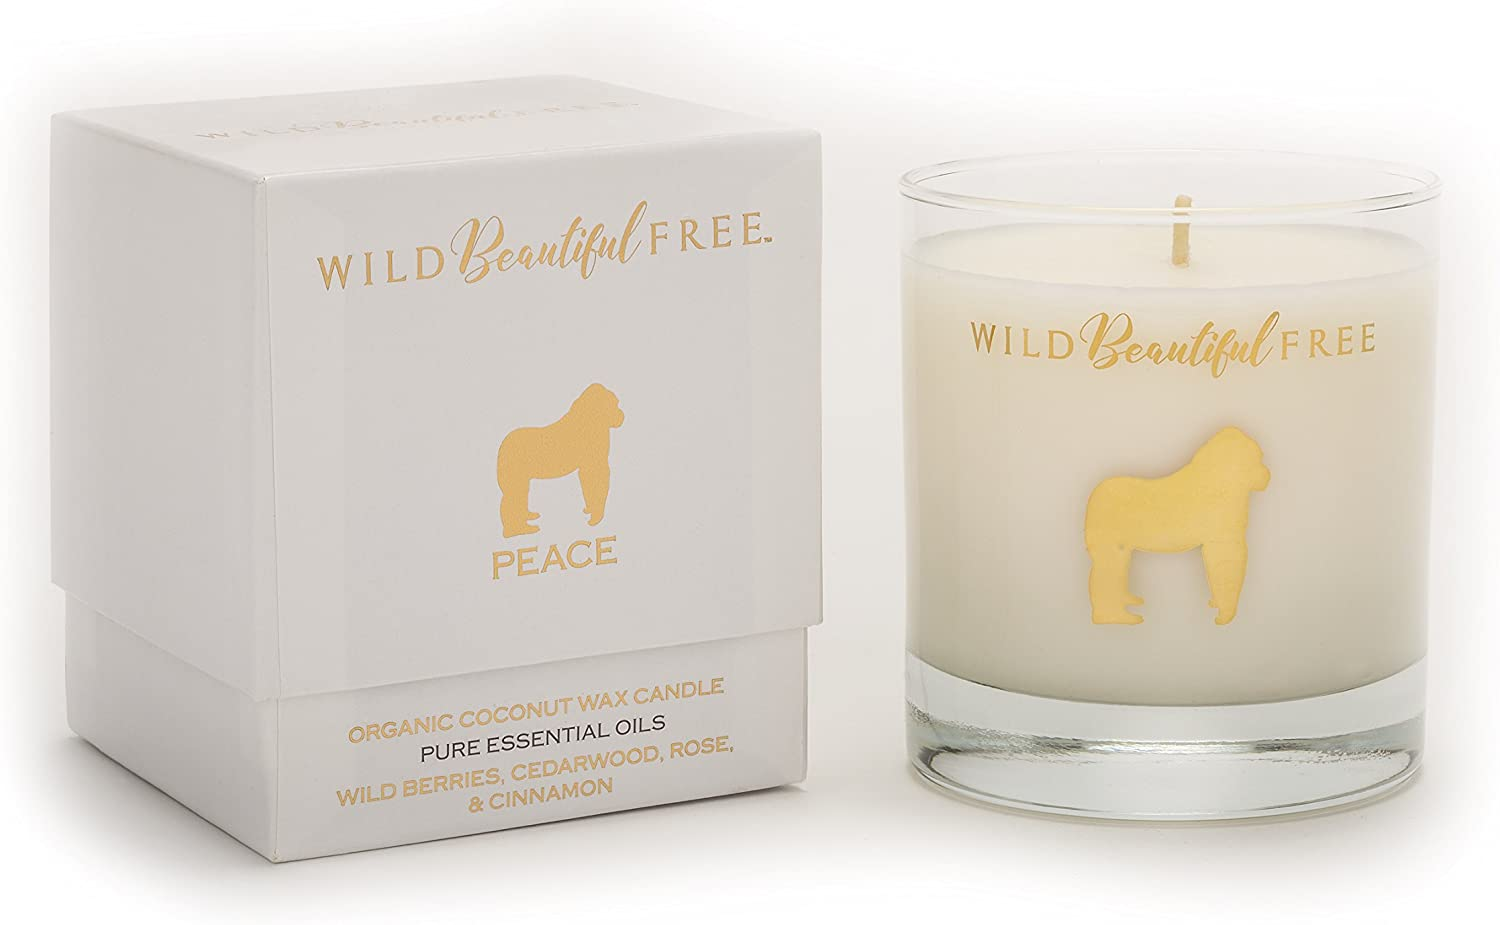 Wild Beautiful Free Wild Berry Rose and Winter Spice Organic Aromatherapy Candle with Pure Essential Oils for Balance and Anxiety Relief - Peace Gorilla Luxury Candle